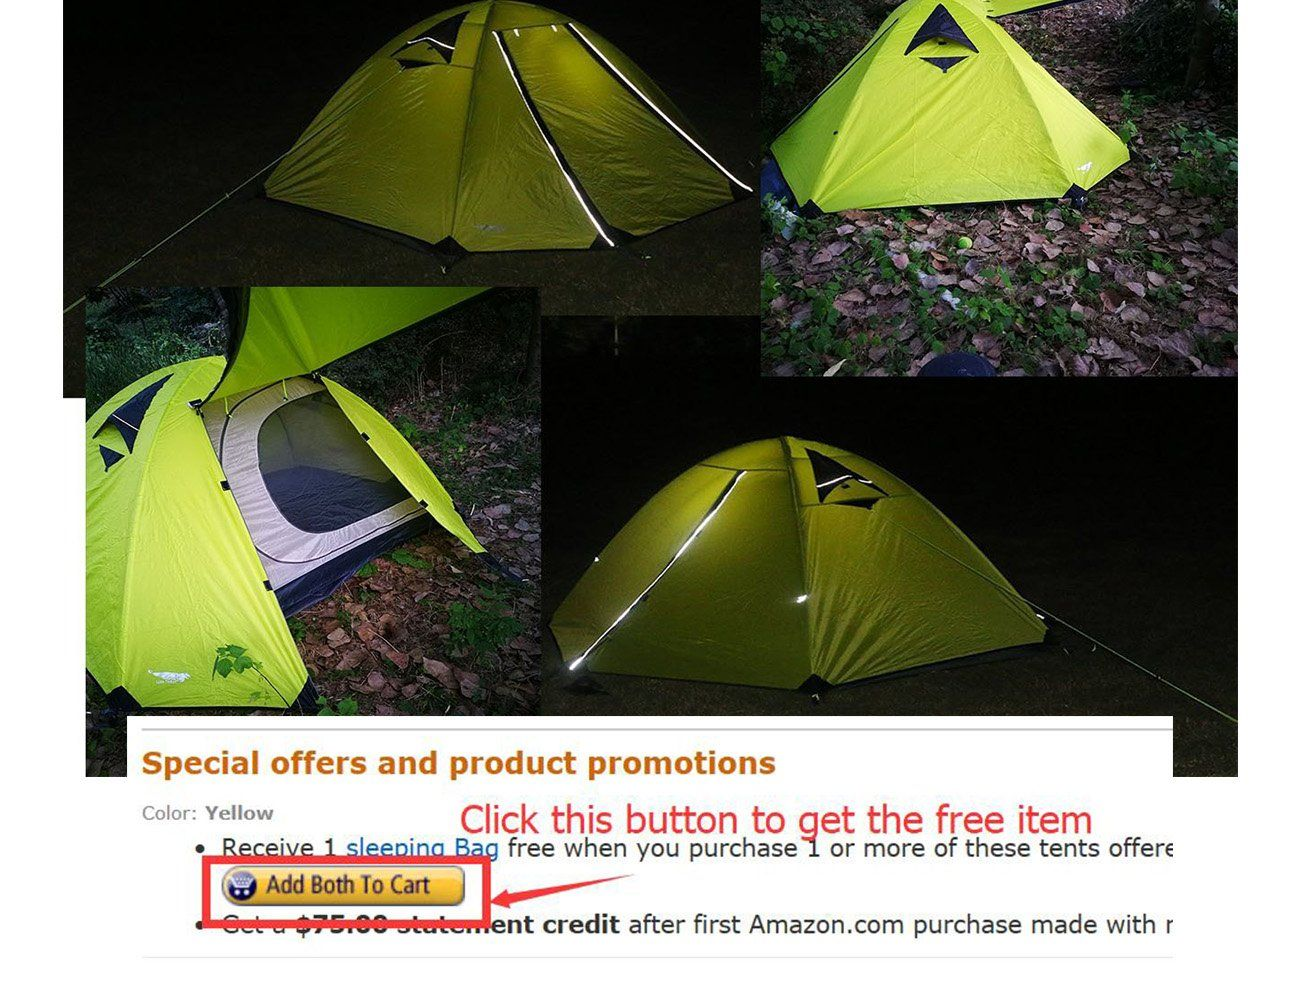 Luxe Tempo 2 Person 4 Season Tents With Free Sleeping Bag Freestanding For Camping Backpacking Aluminum Poles All Weather T 4 Season Tent Tent Backpacking Tent